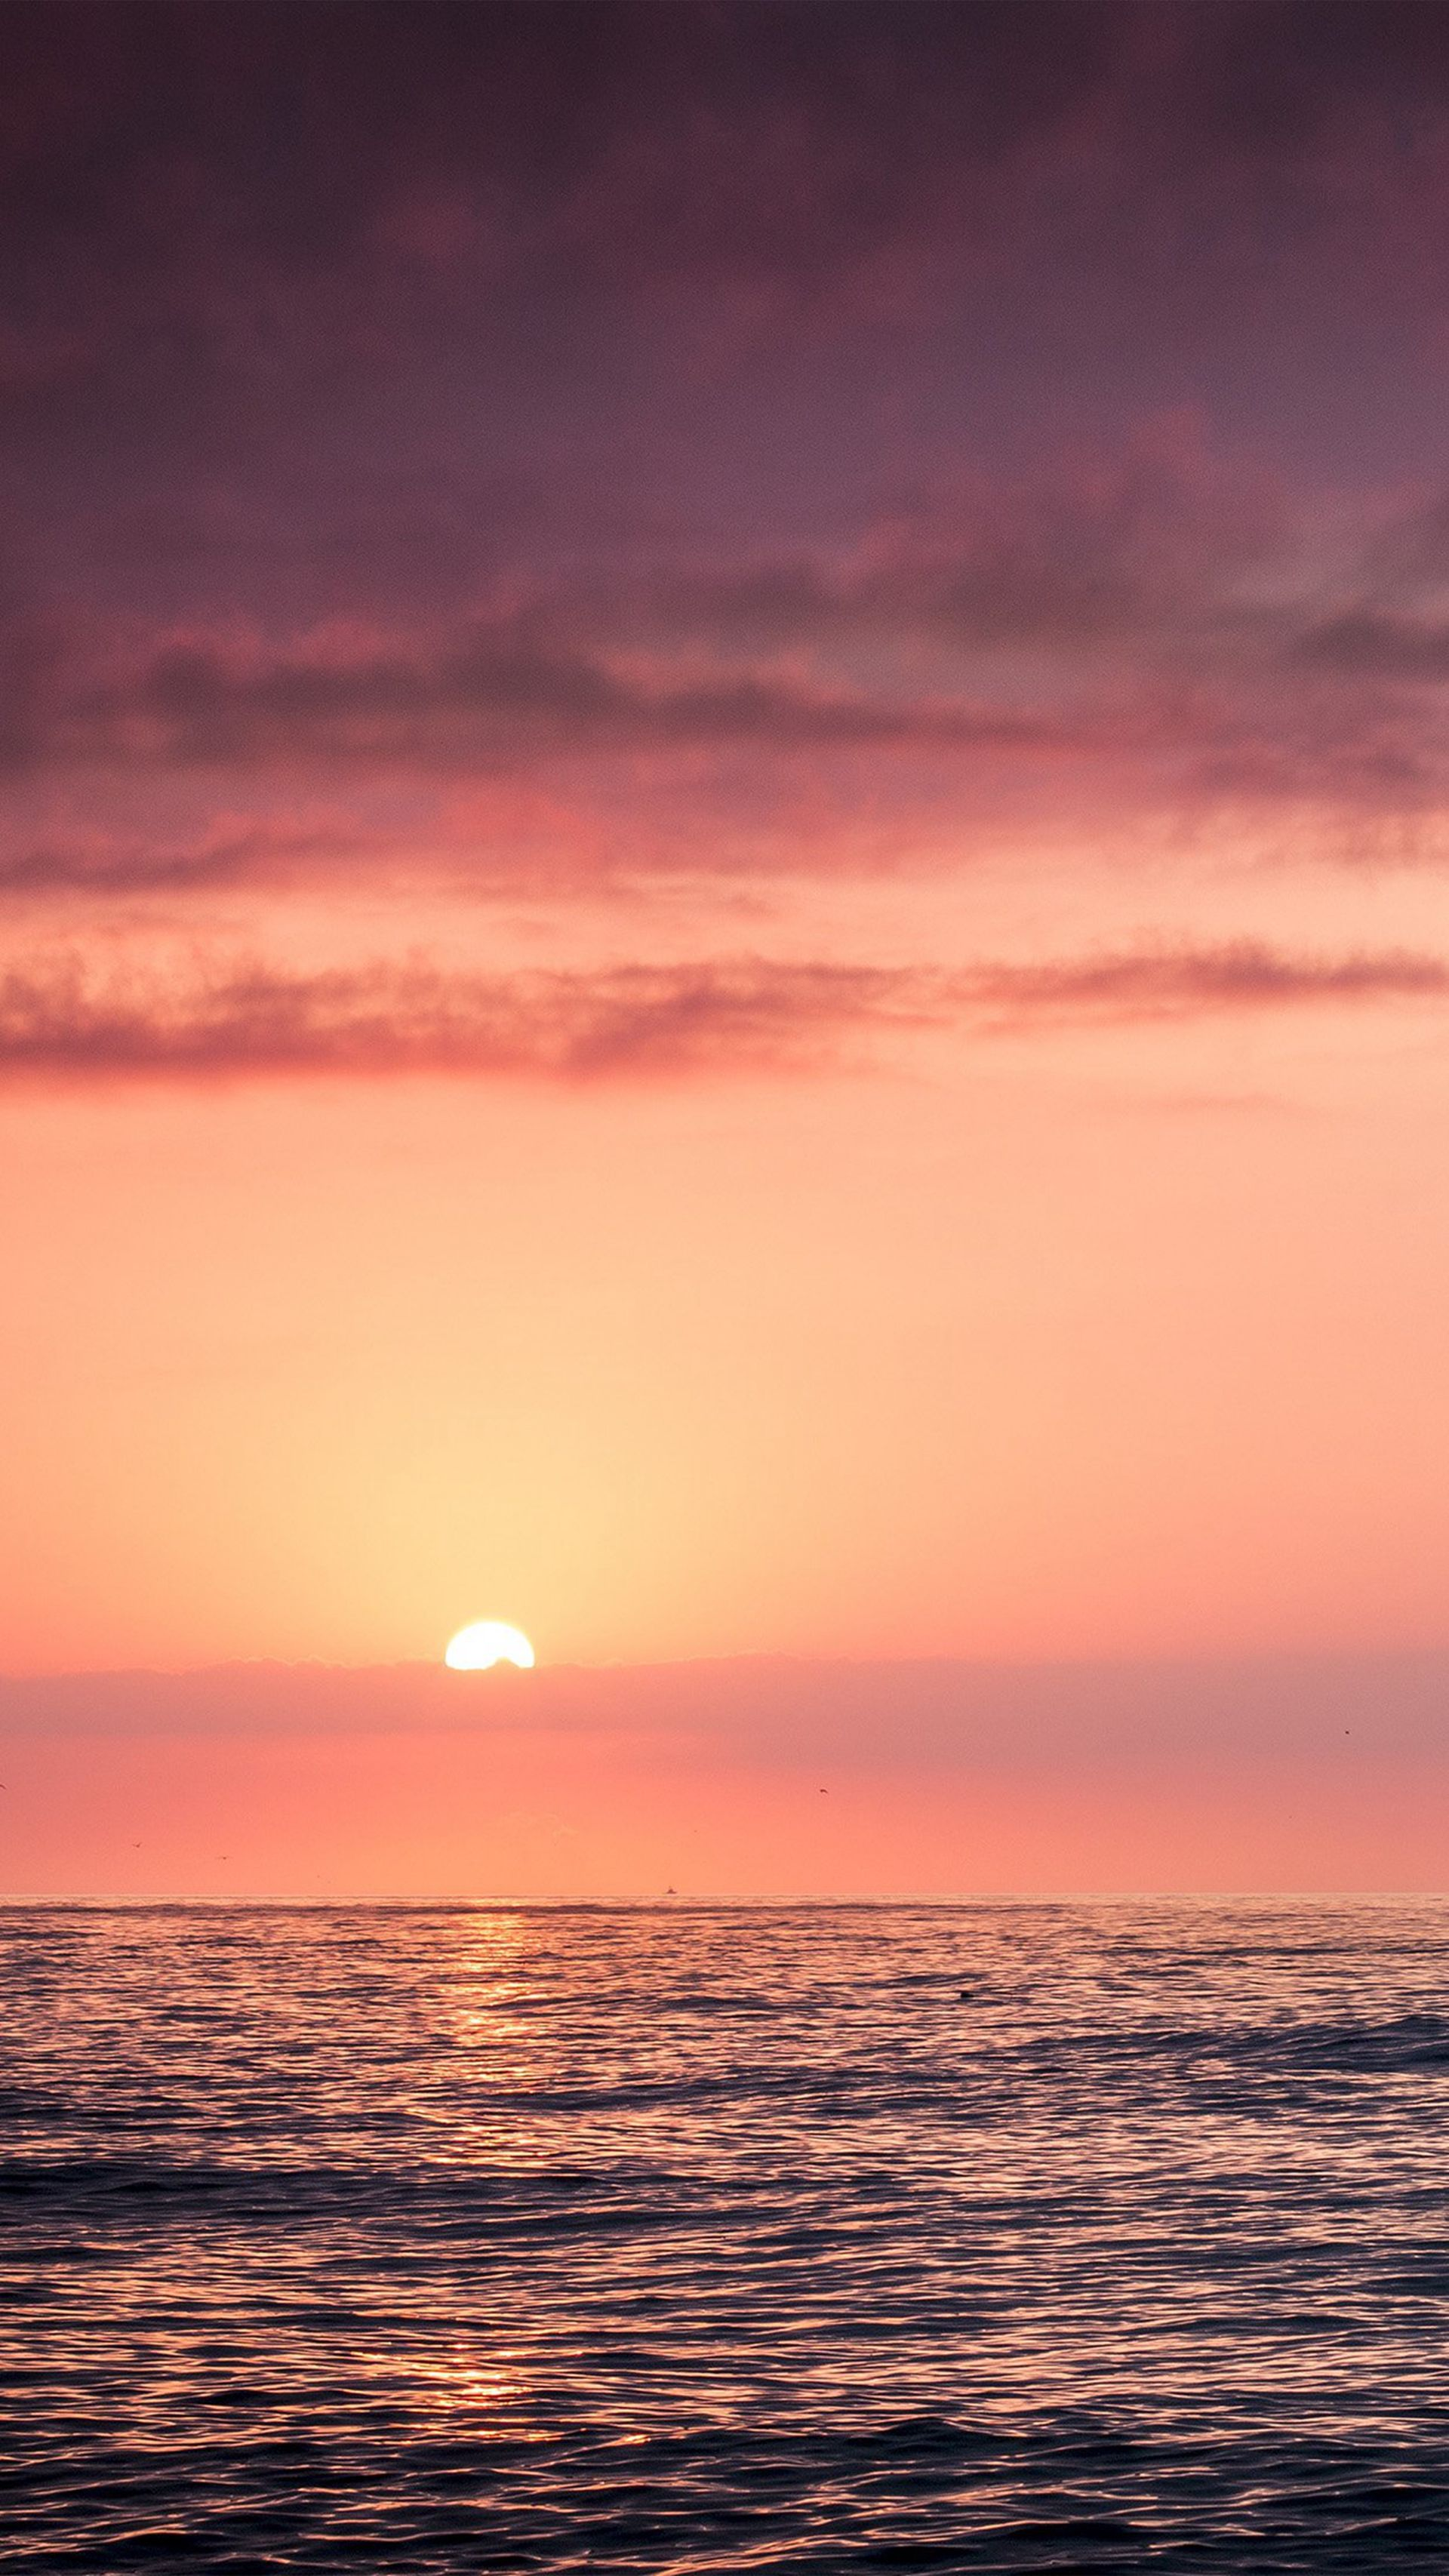 Sunset sea beach sky red iphone 6 plus wallpaper iphone 6 sunset sea beach sky red iphone 6 plus wallpaper voltagebd Gallery